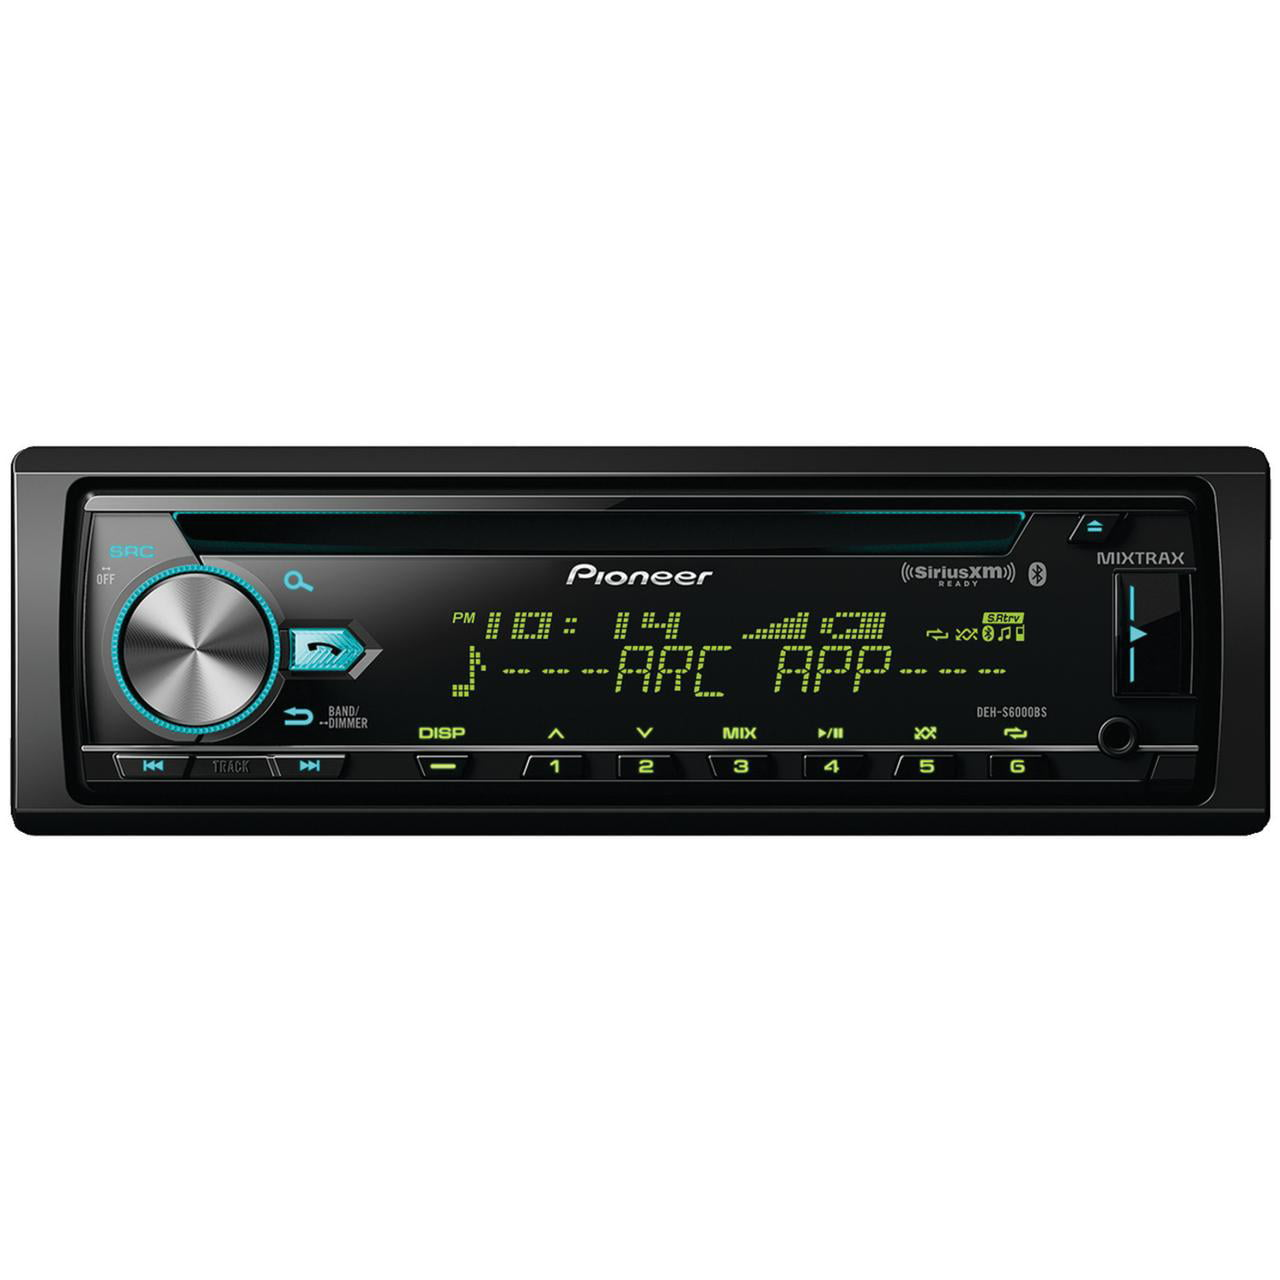 Pioneer DEH-S6000BS Single-DIN In-dash CDReceiver With Bluetooth & SiriusXM Ready by Pioneer